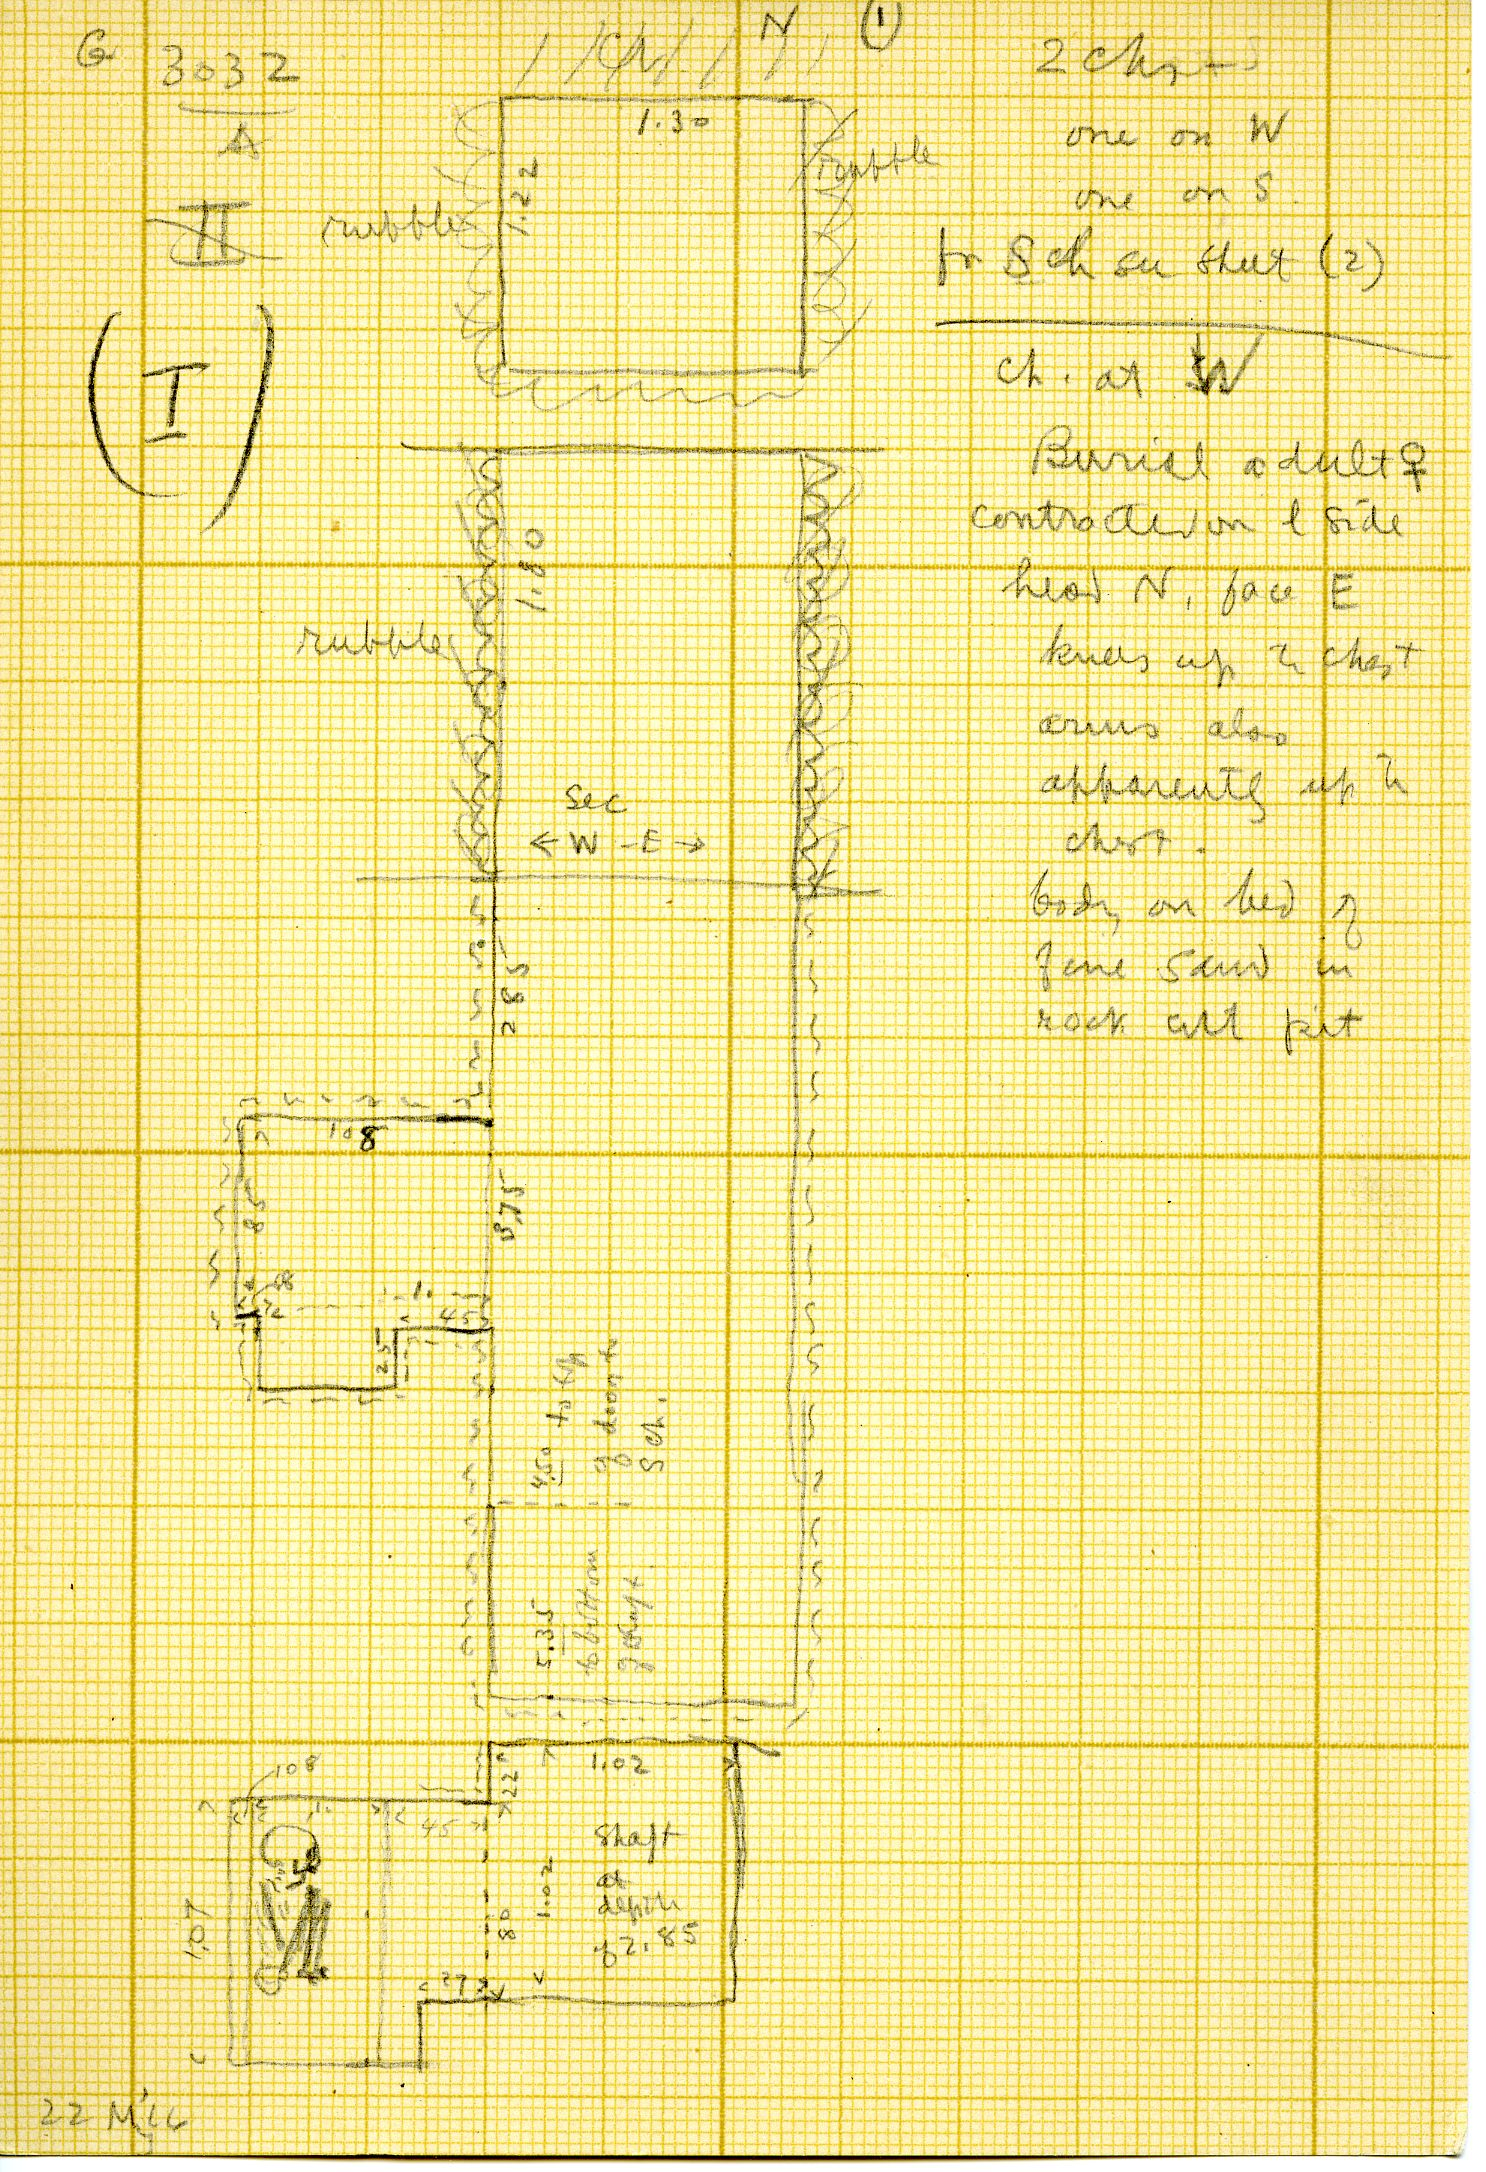 Maps and plans: G 3032, Shaft A